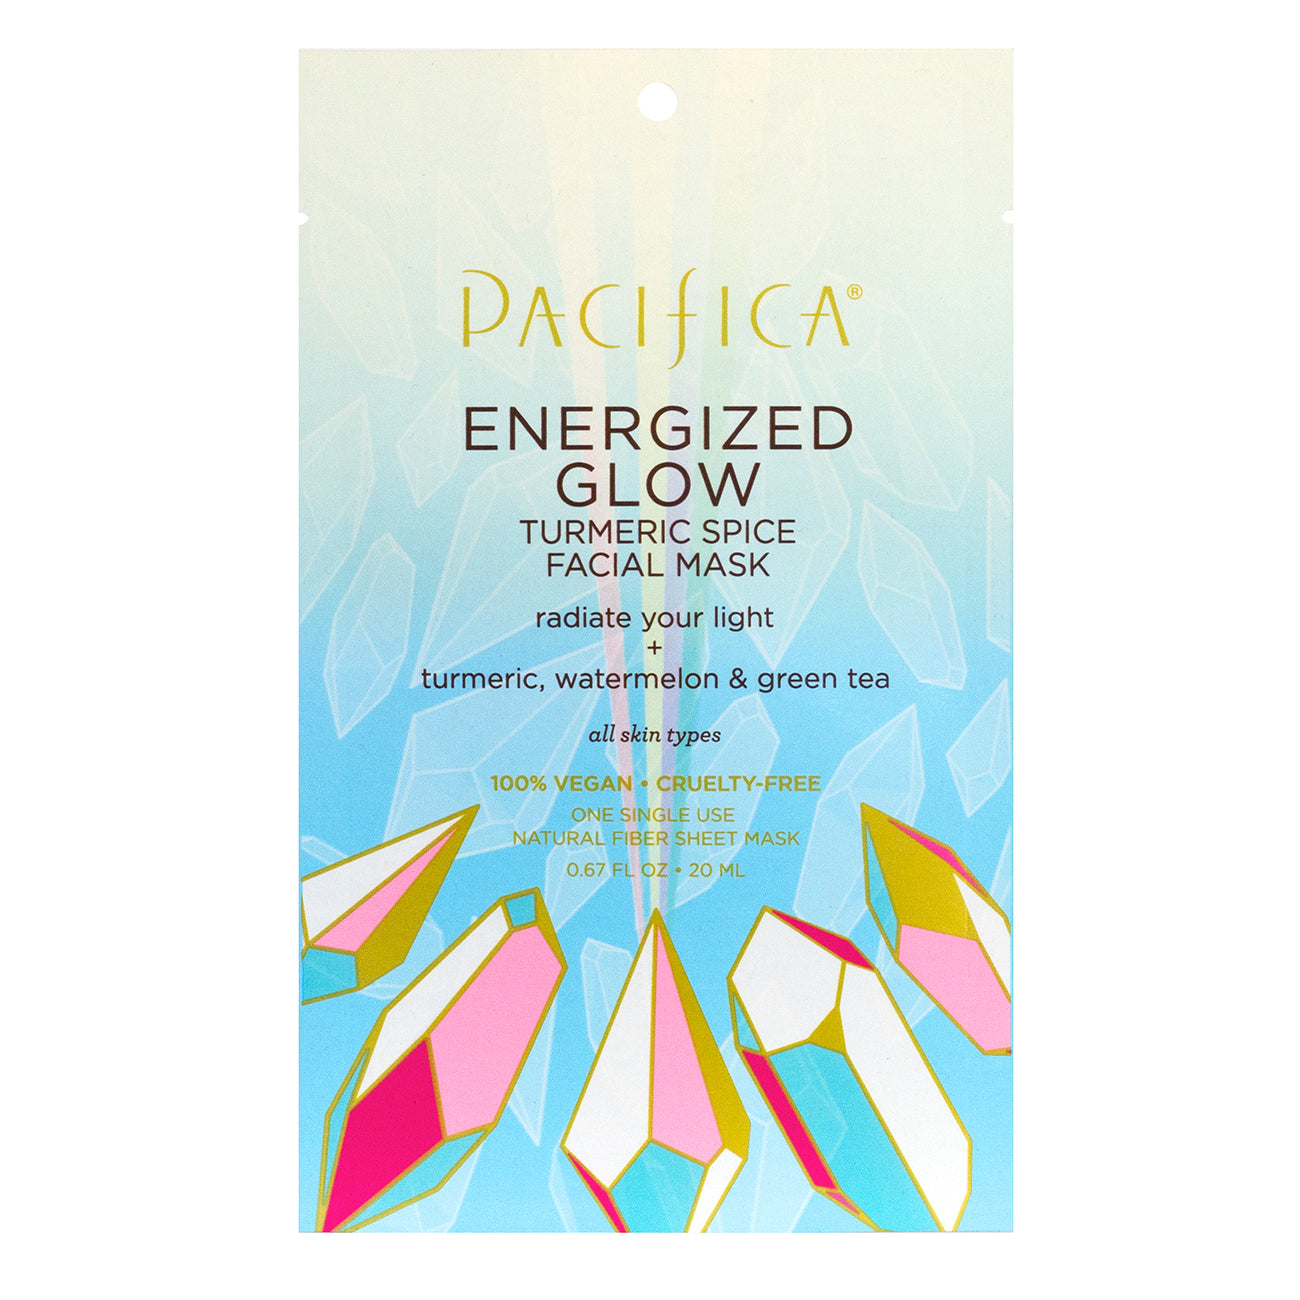 Energized Glow Turmeric Spice Facial Mask - Skin Care - Pacifica Beauty